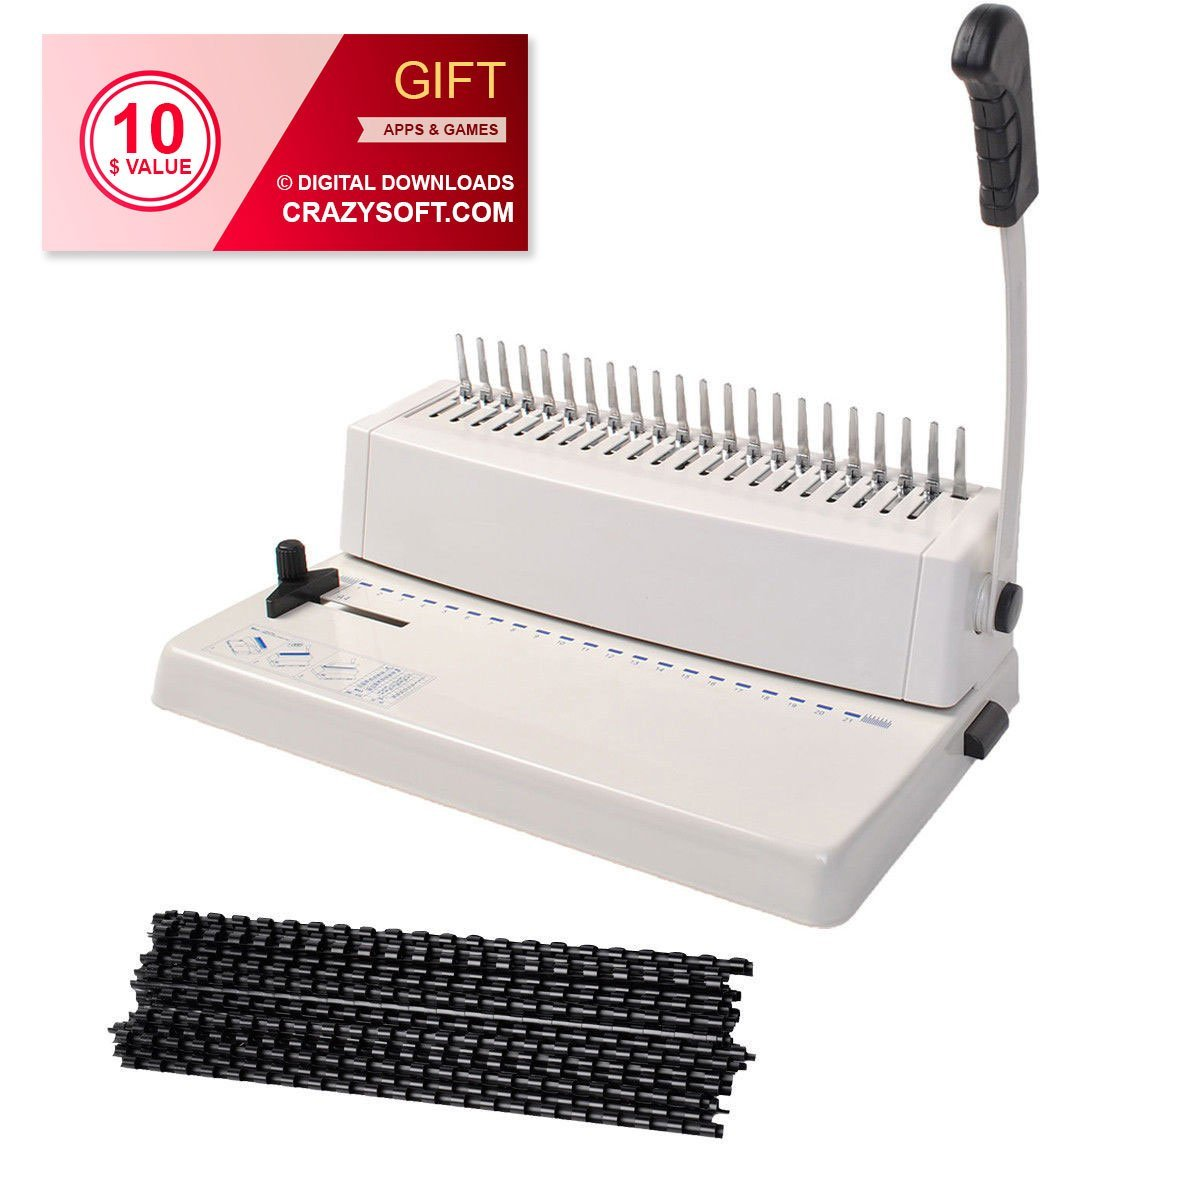 21-Hole 250 Sheets Paper Comb Punch Binder Binding Machine Scrapbook w/200 Combs - By Choice Products